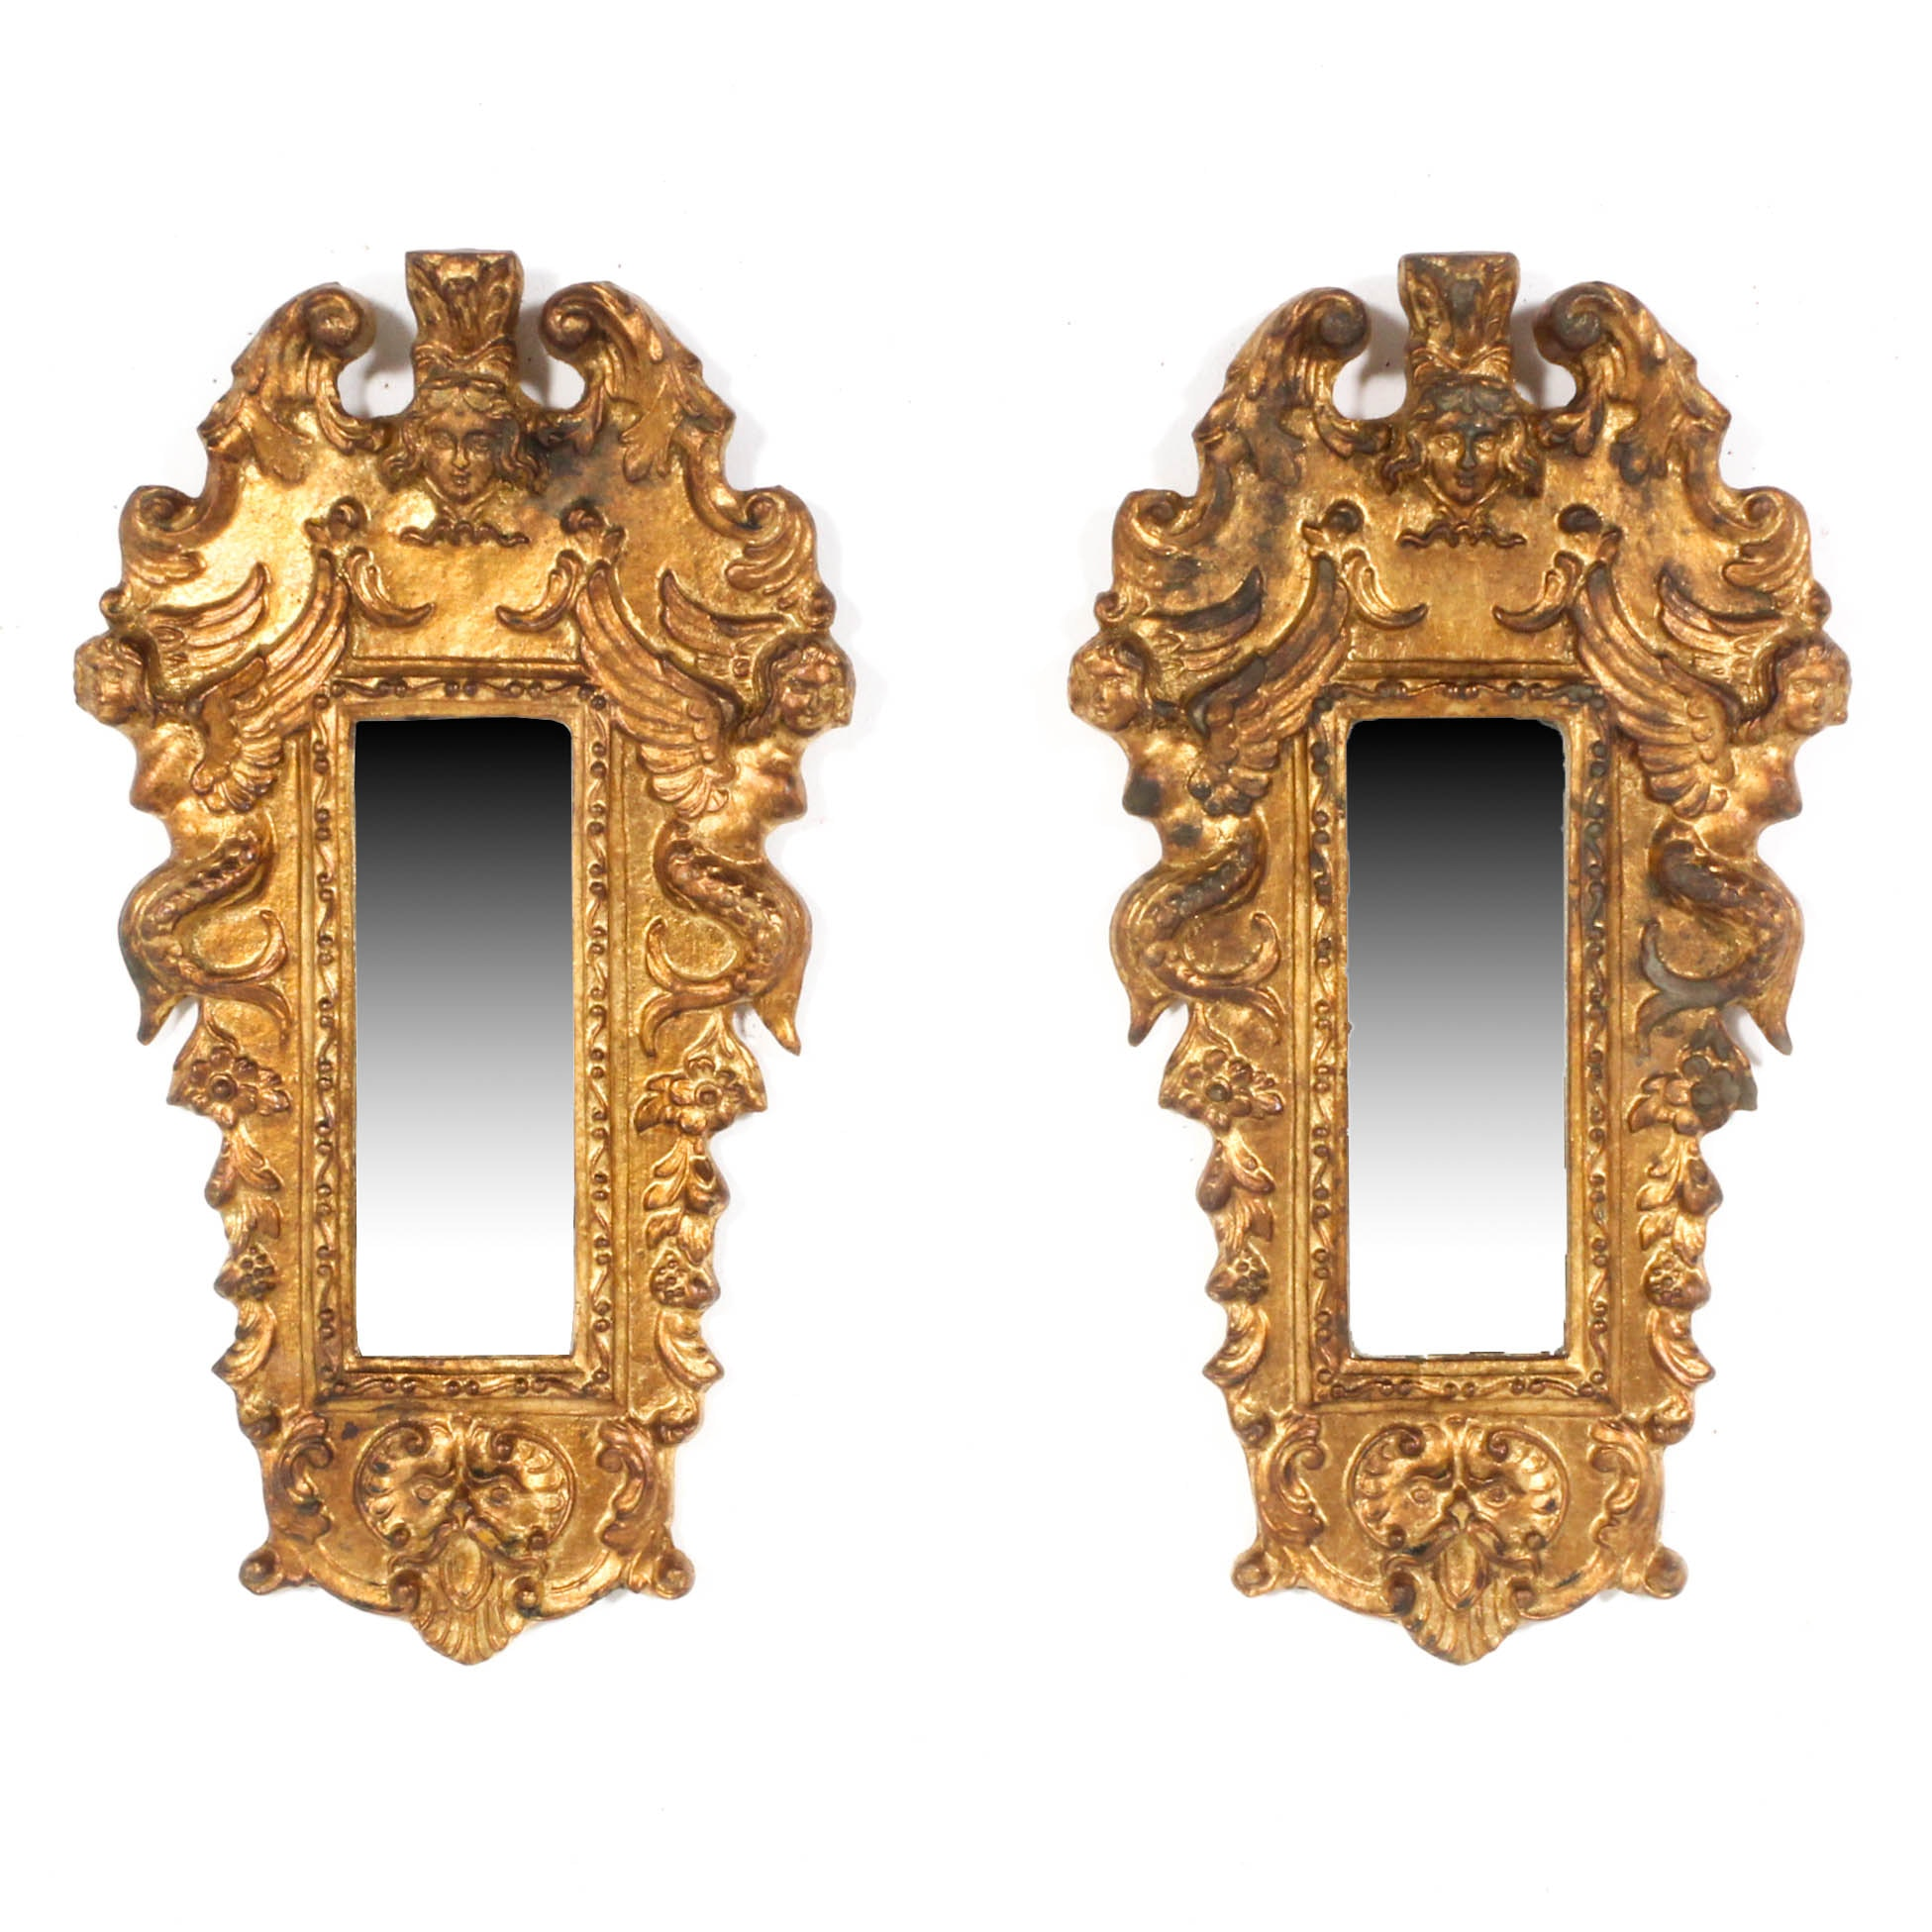 Baroque Gold Mirrors Italian Baroque Style Gold Painted Mirrors ...